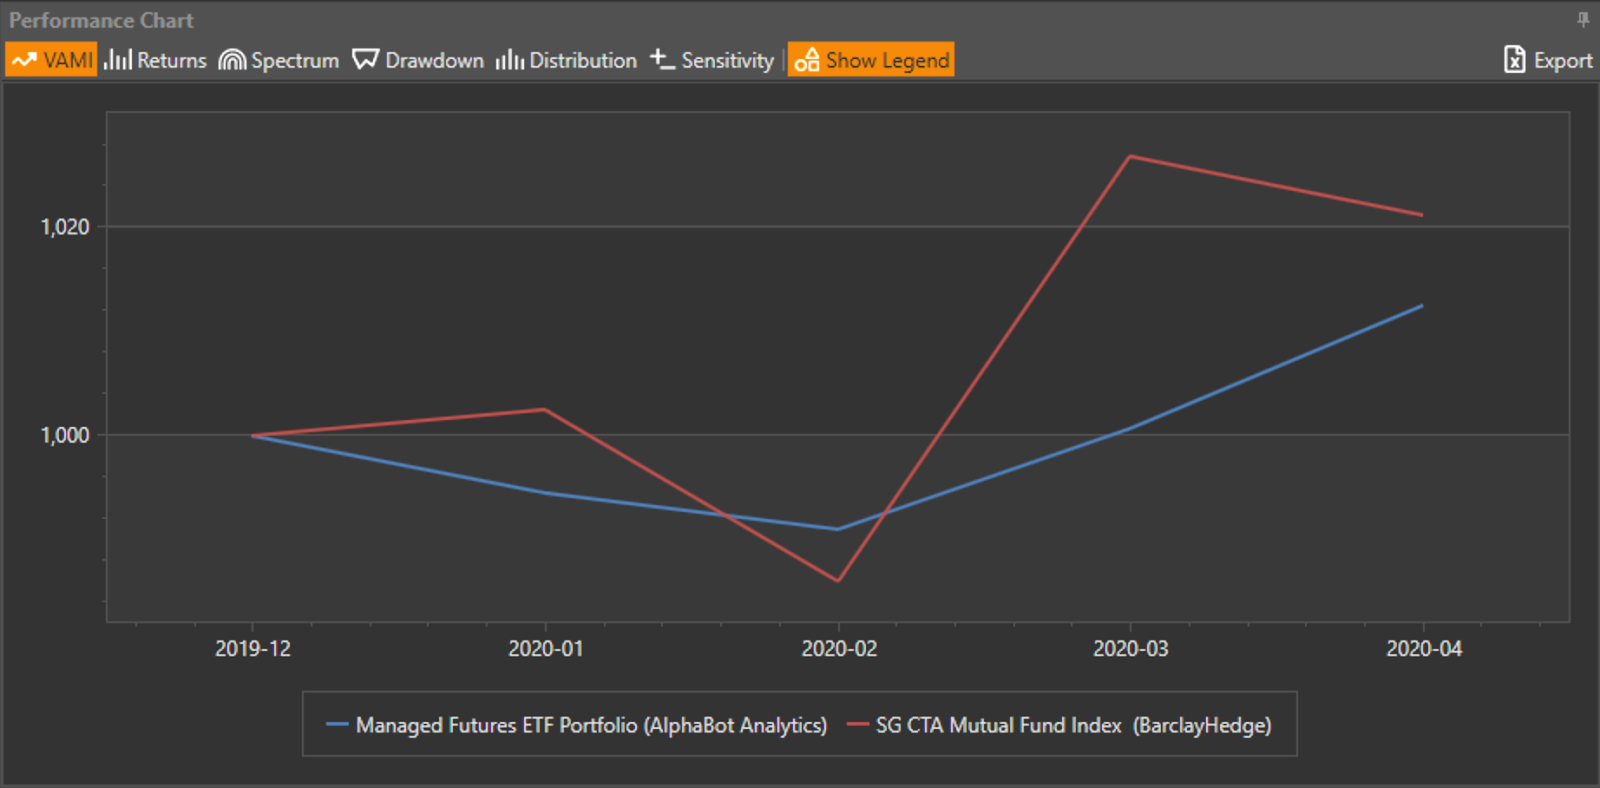 VAMI Chart of Managed Futures ETF Portfolio vs SG CTA Mutual Fund Index performance